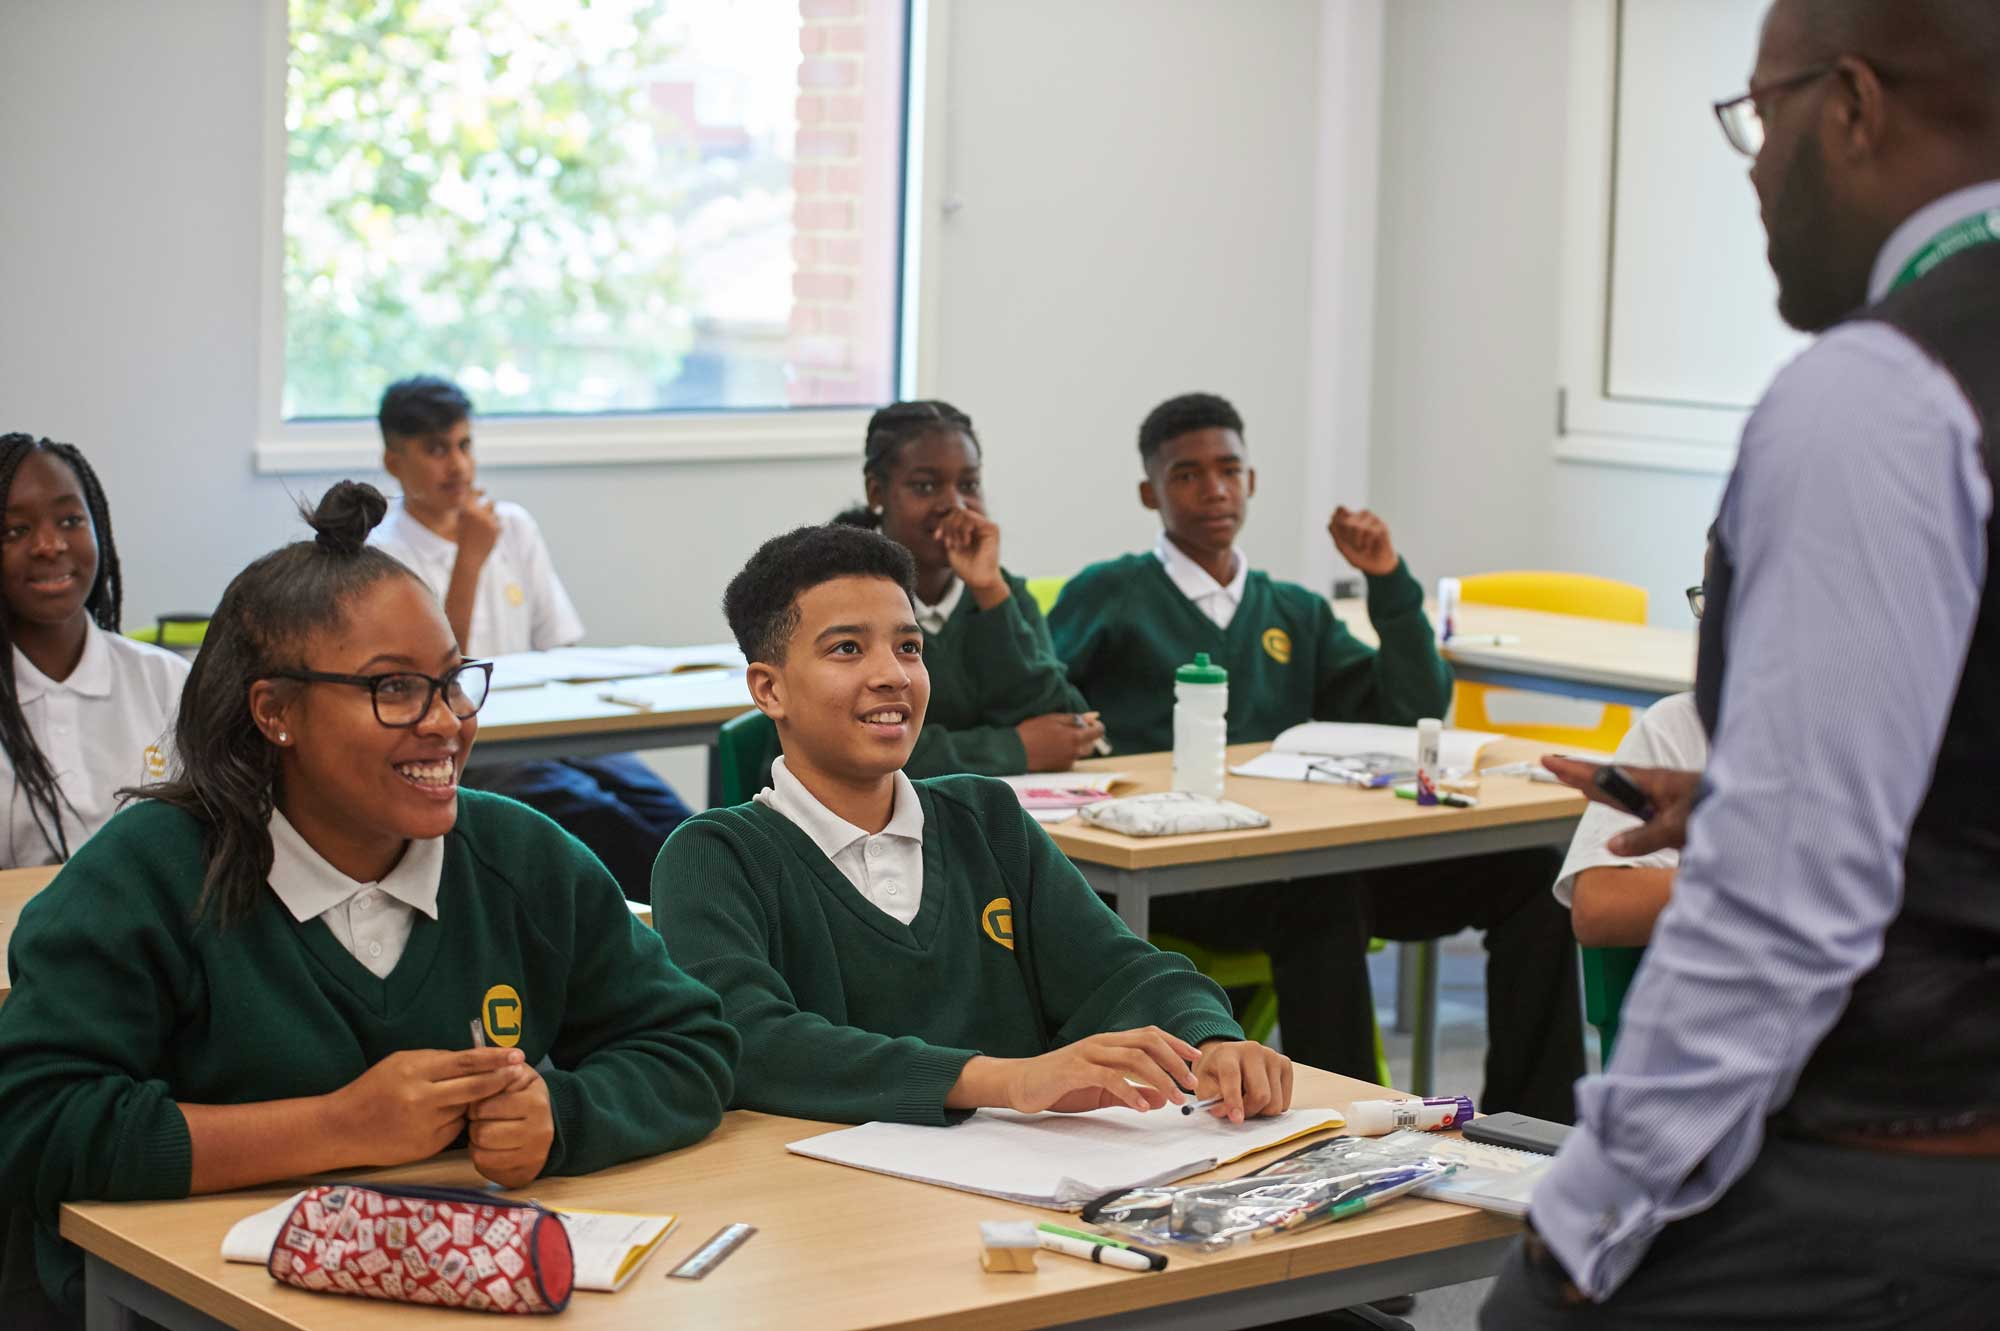 Learning at Charter School East Dulwich